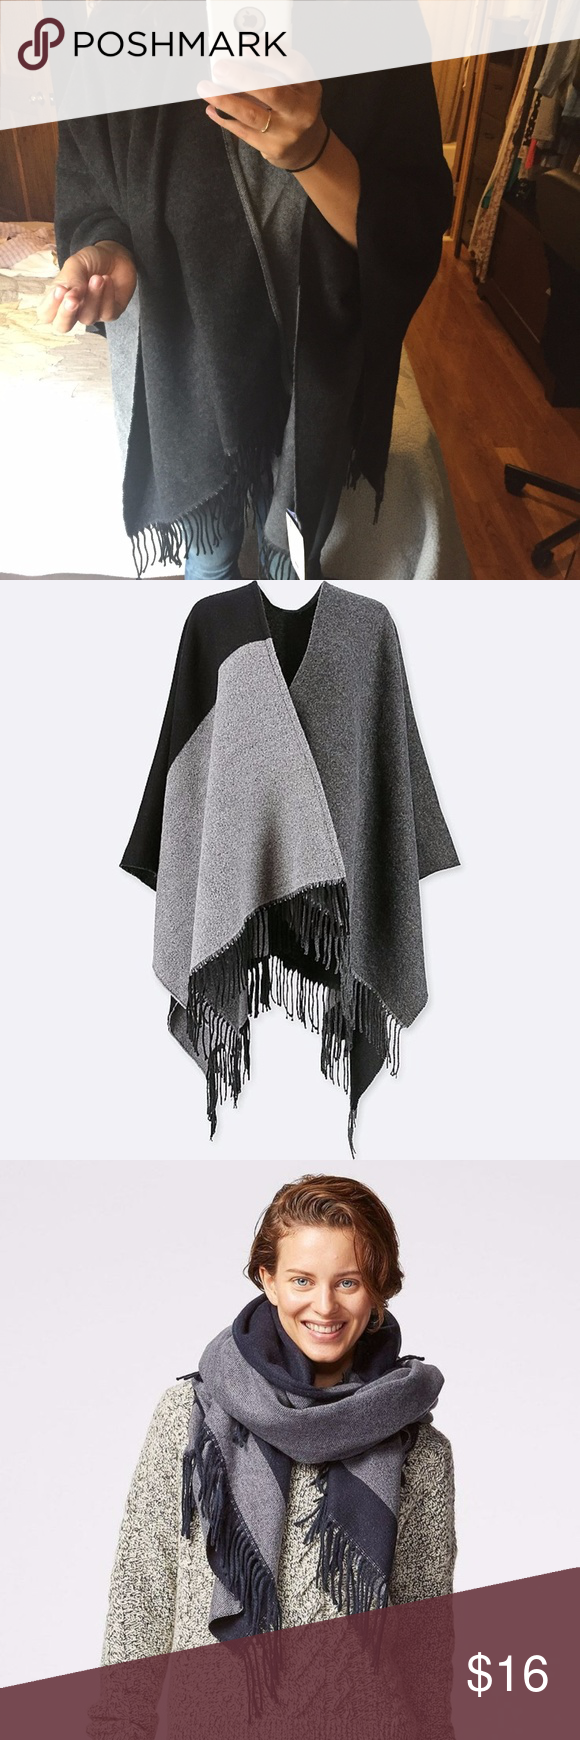 UNIQLO Colorblock 2-Way Stole Wrap/Poncho/Scarf This is a brand new with tags 2-way stole that can be worn as a wrap, poncho or scarf.  Great fall colorblocking hues.  Super warm with black fringe which measures 4in long. Uniqlo Jackets & Coats Capes